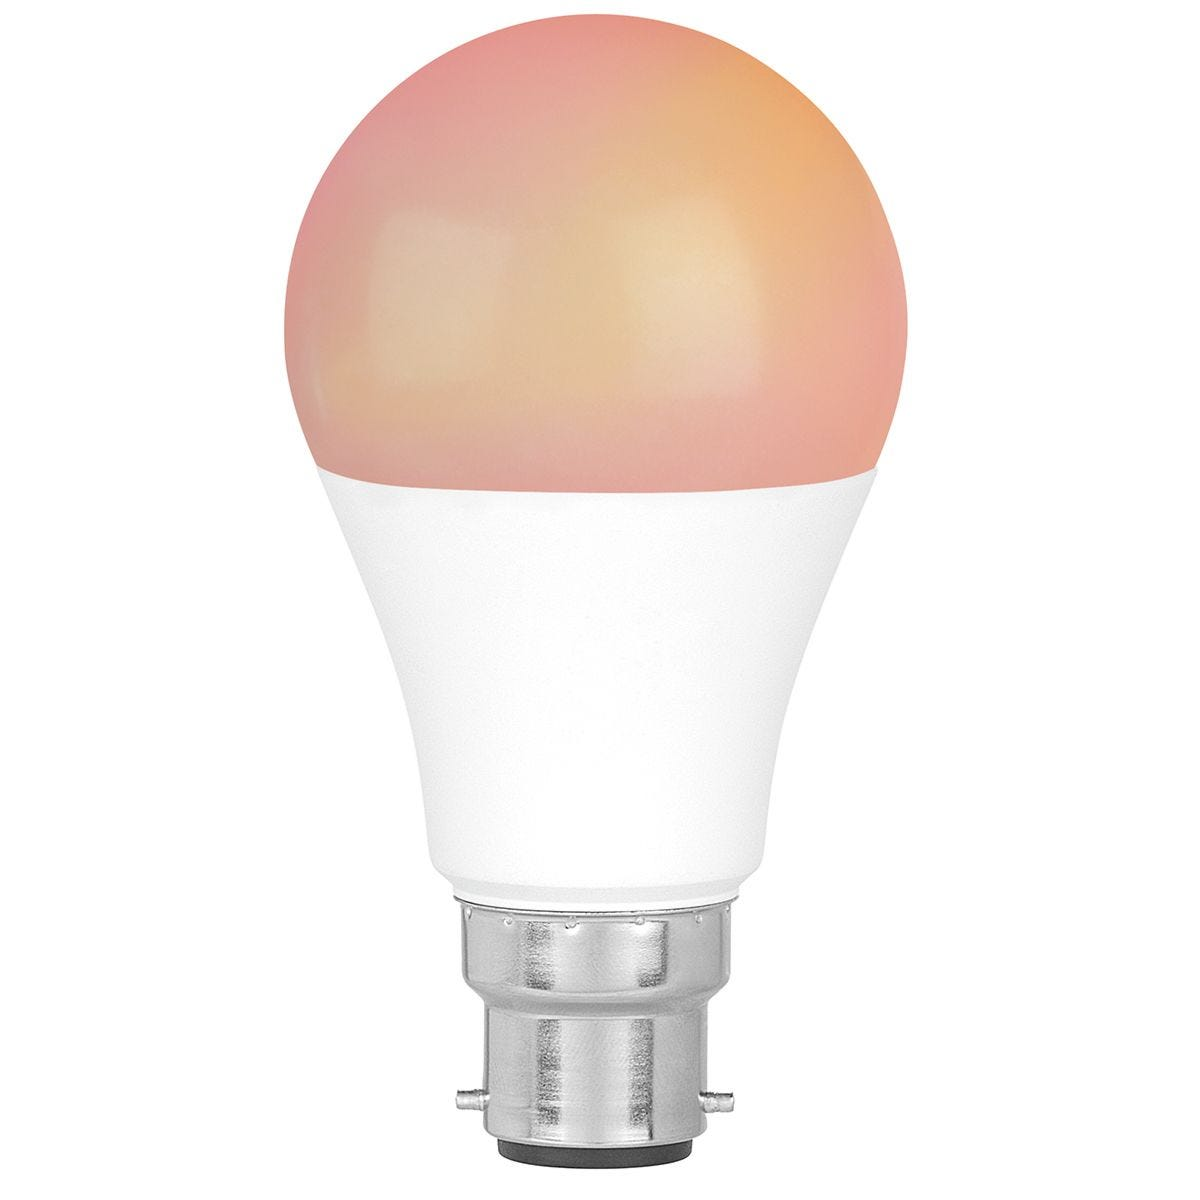 Intempo EE5013BWHTSTKEU7 Smart Light Bulb with Bayonet Fitting 8.5 W - White and RGB Light Modes